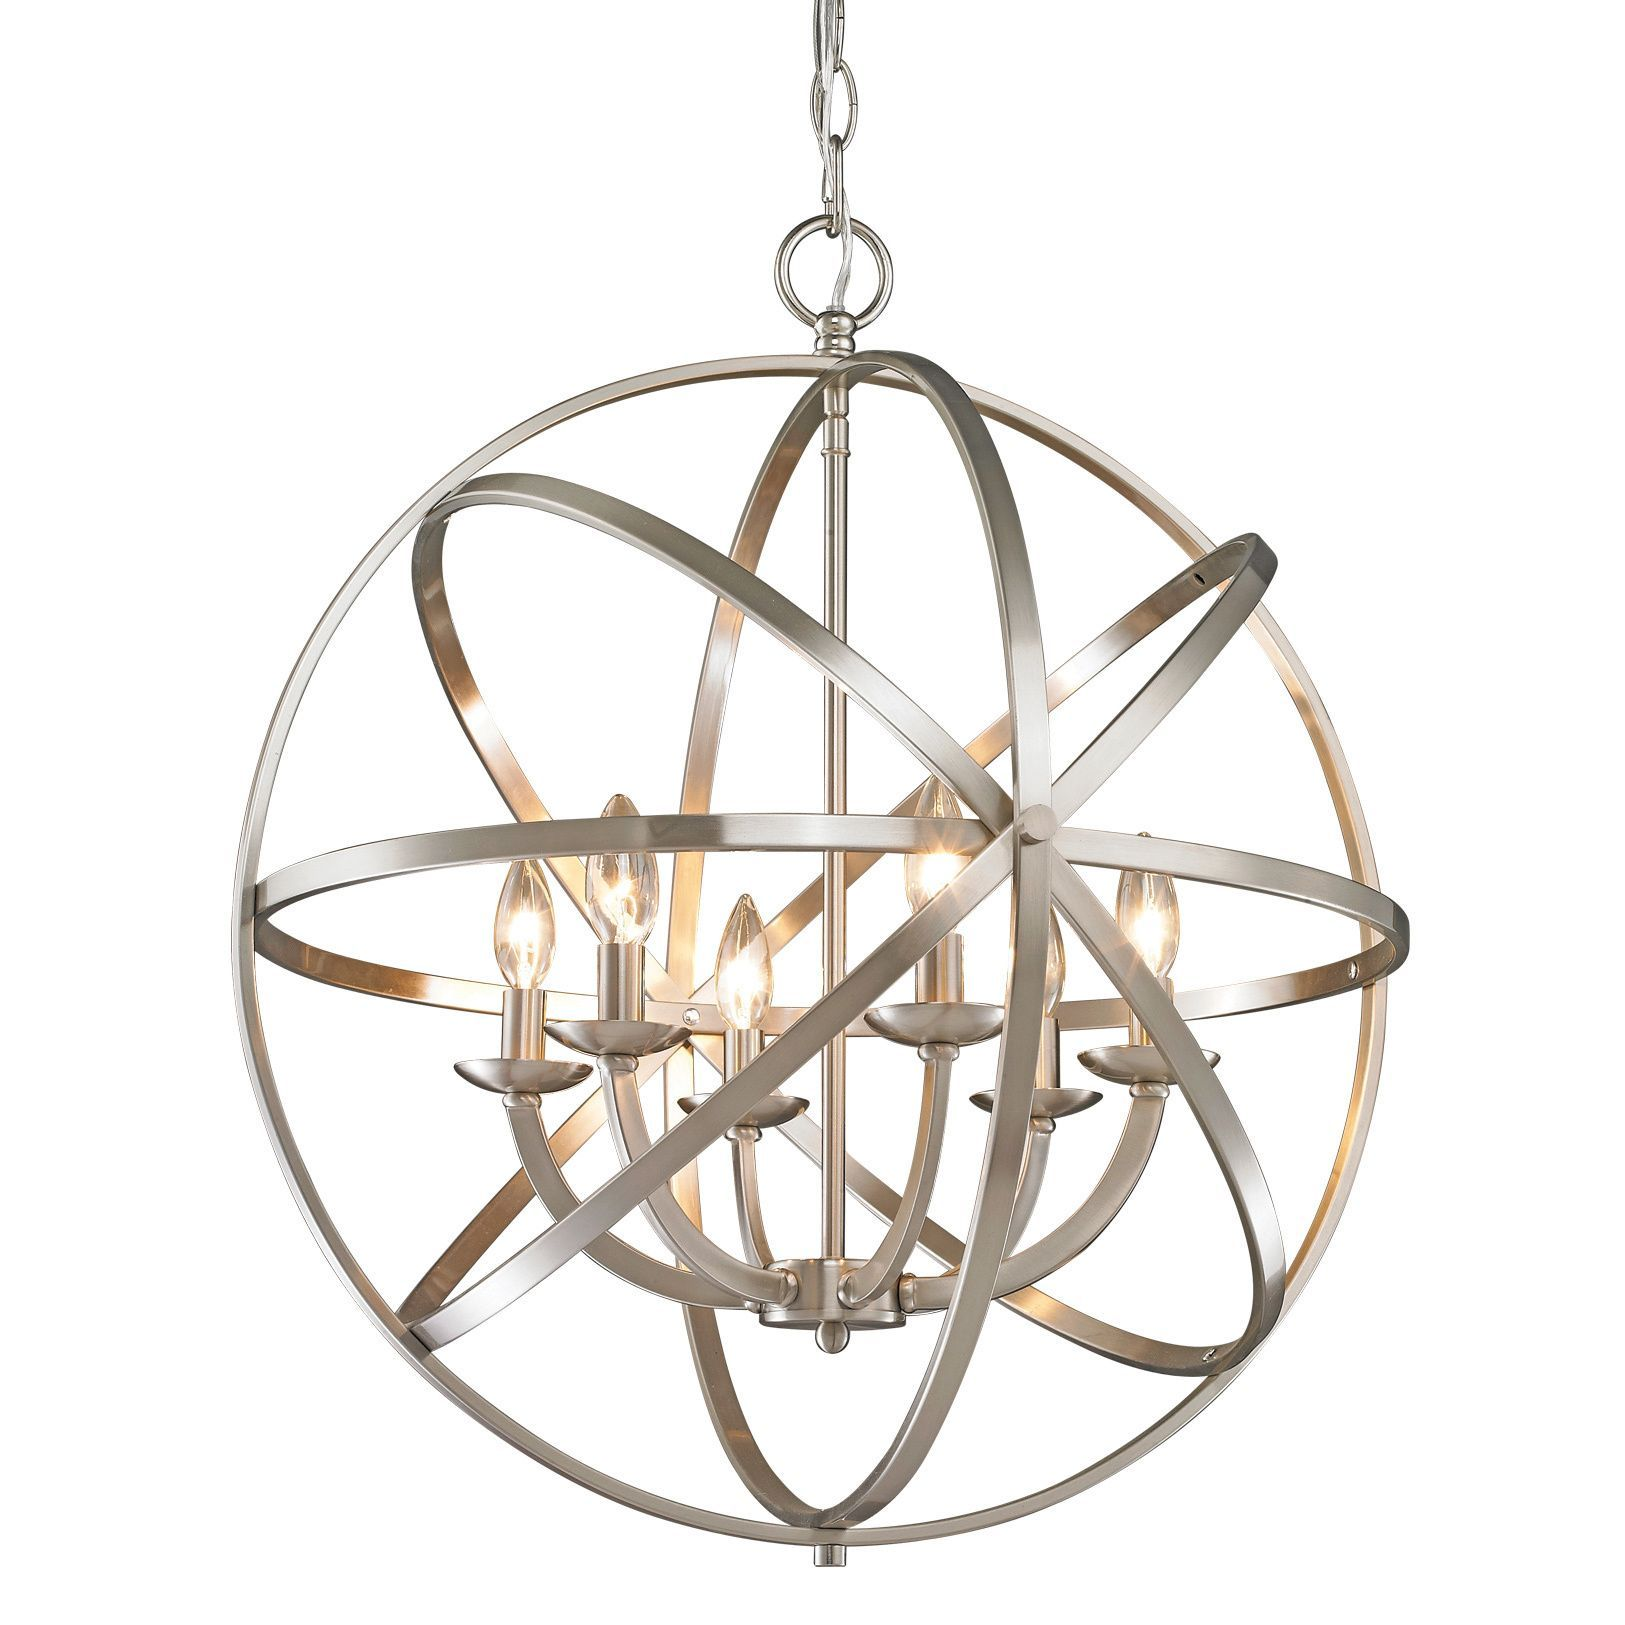 Z lite aranya 6 light brushed nickel chandelier by z lite metal bands - Can light chandelier ...